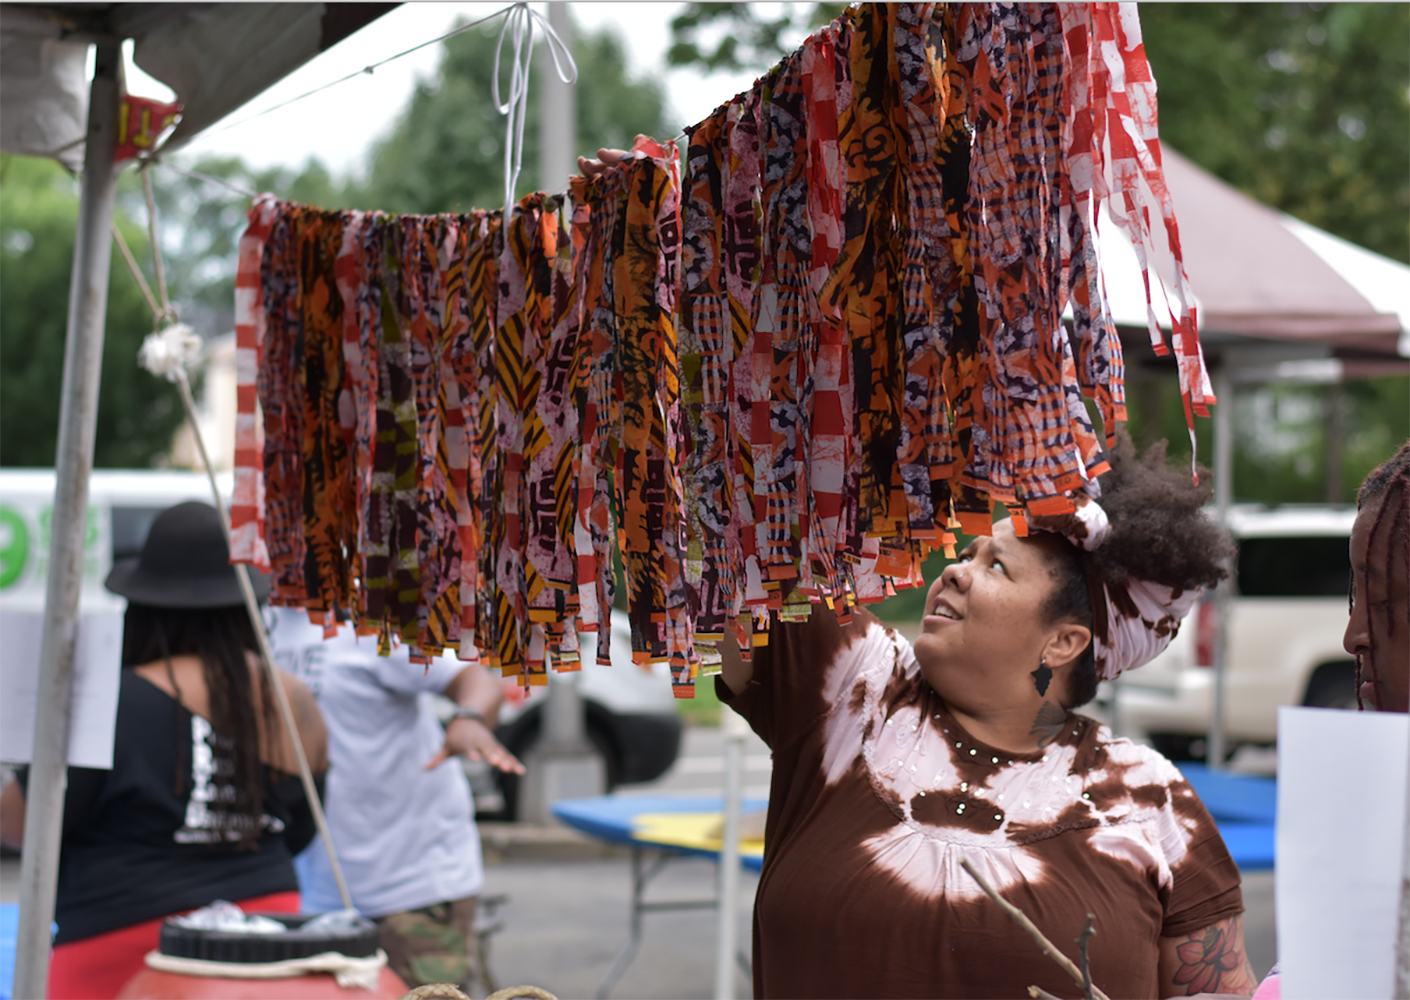 Sheba Gittens looking at colorful fabric strips at art festival